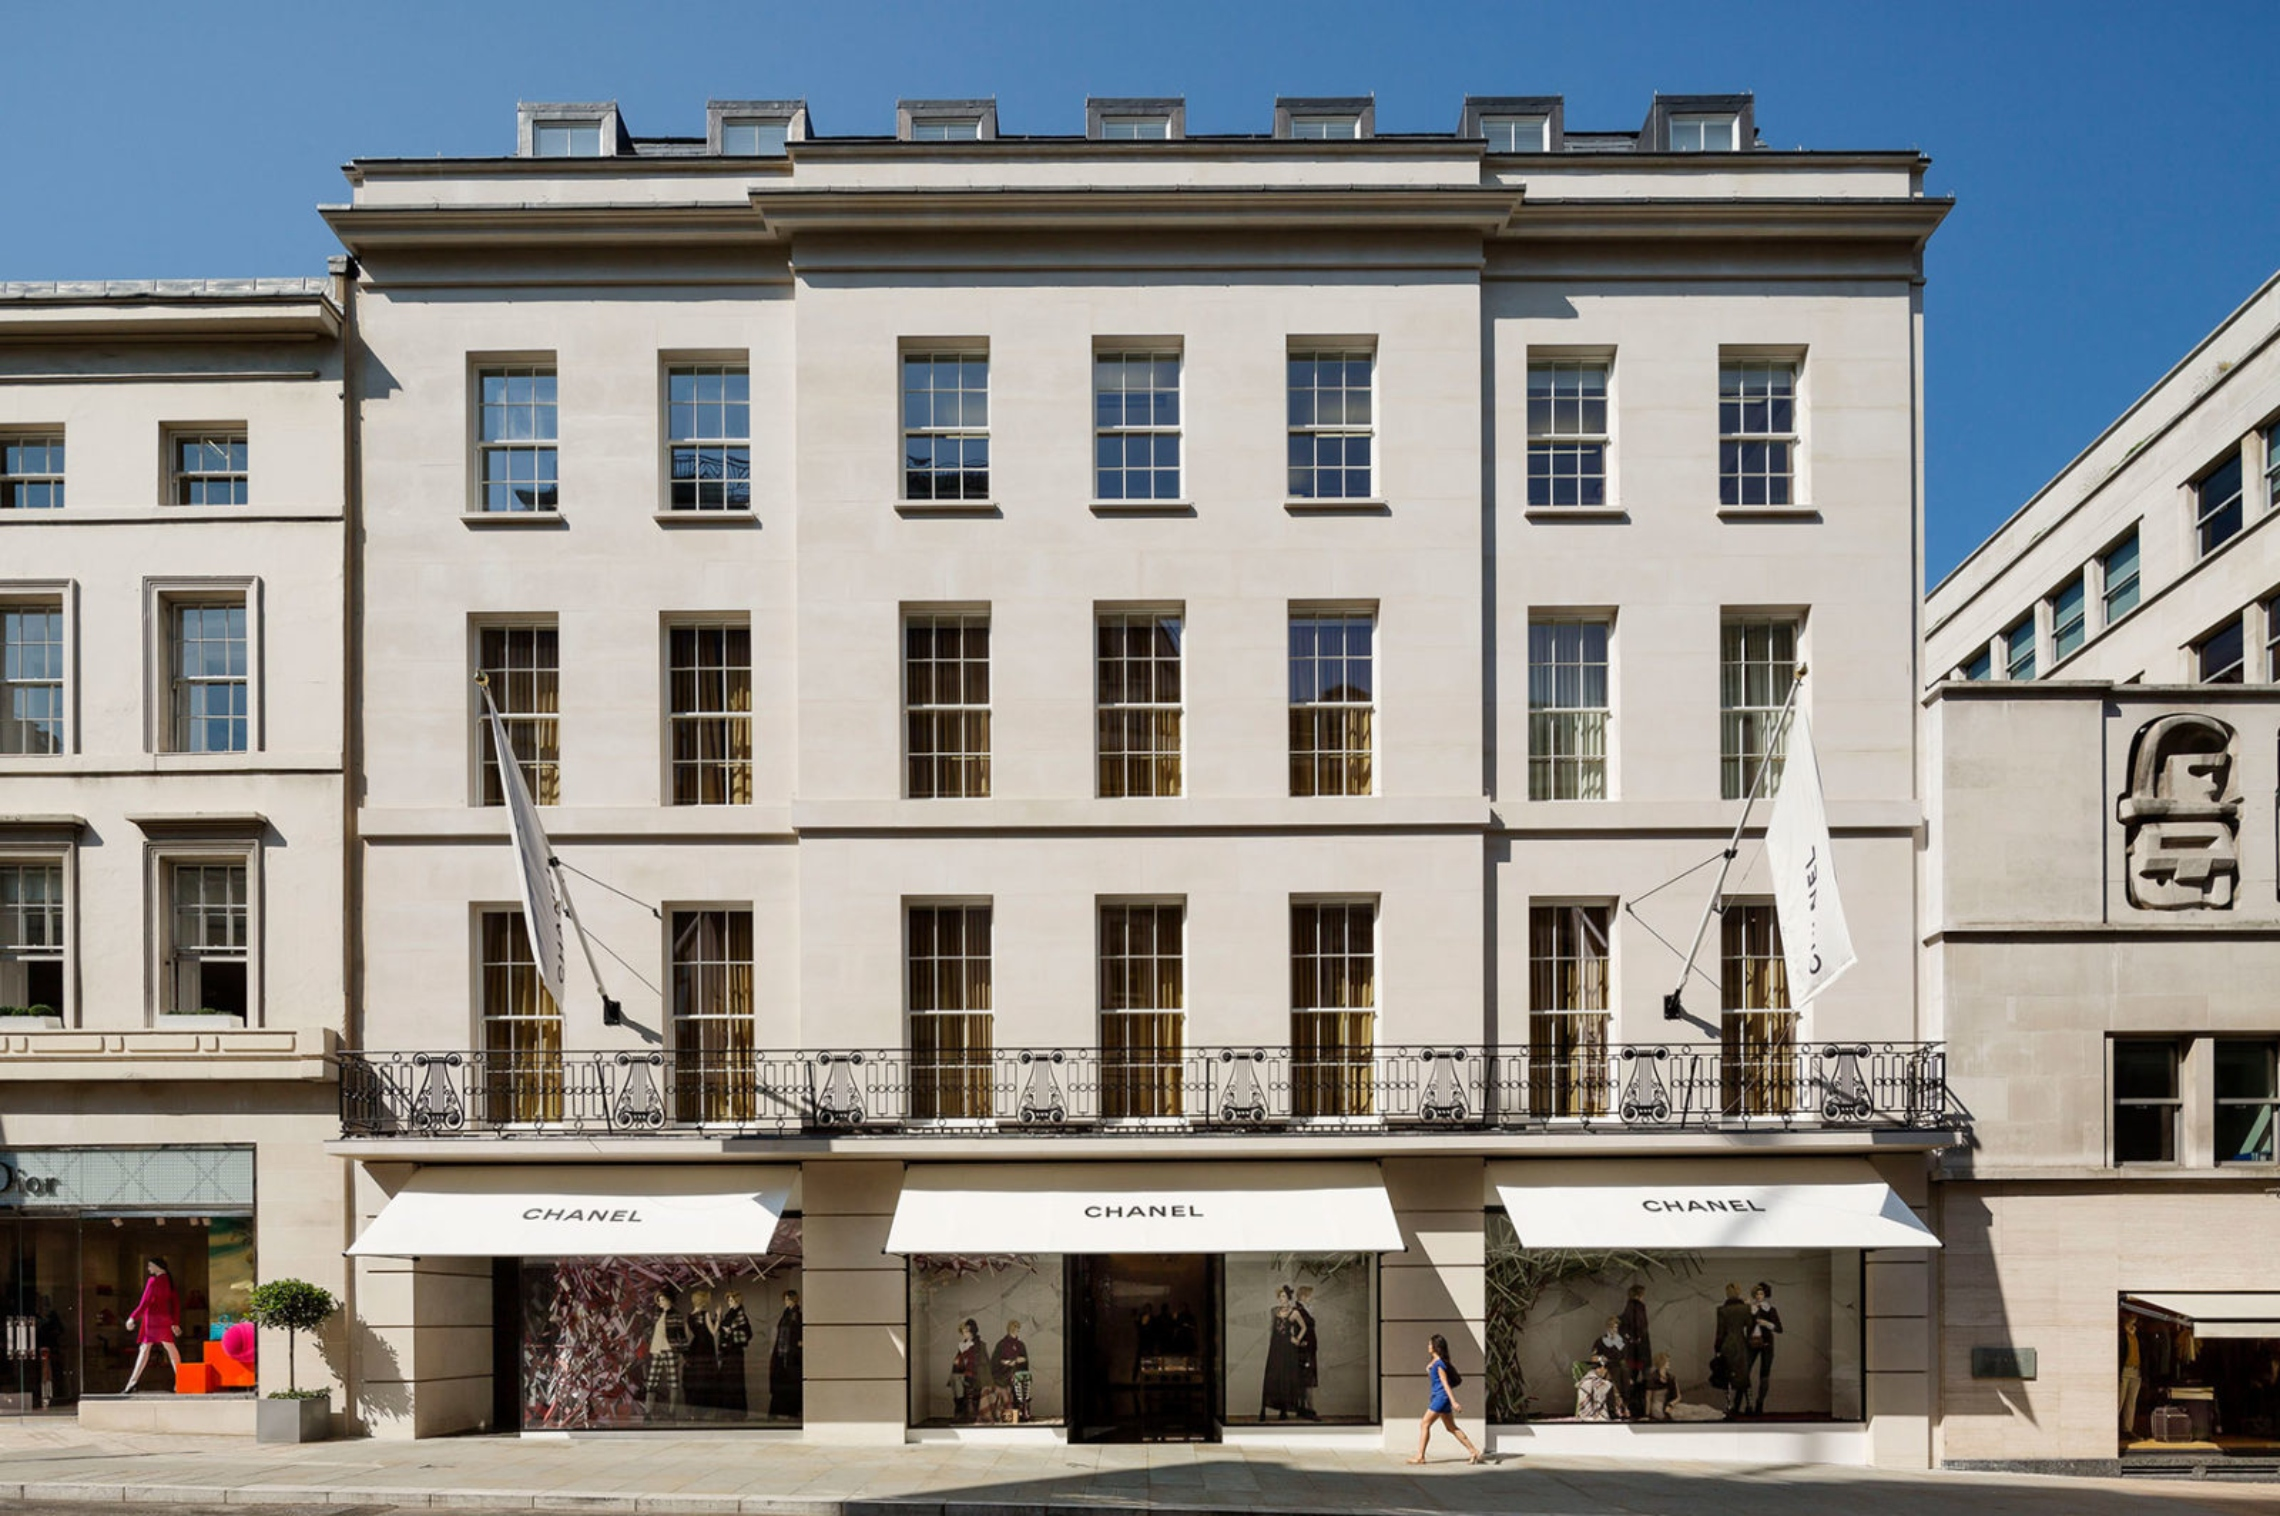 Chanel buys bond street boutique